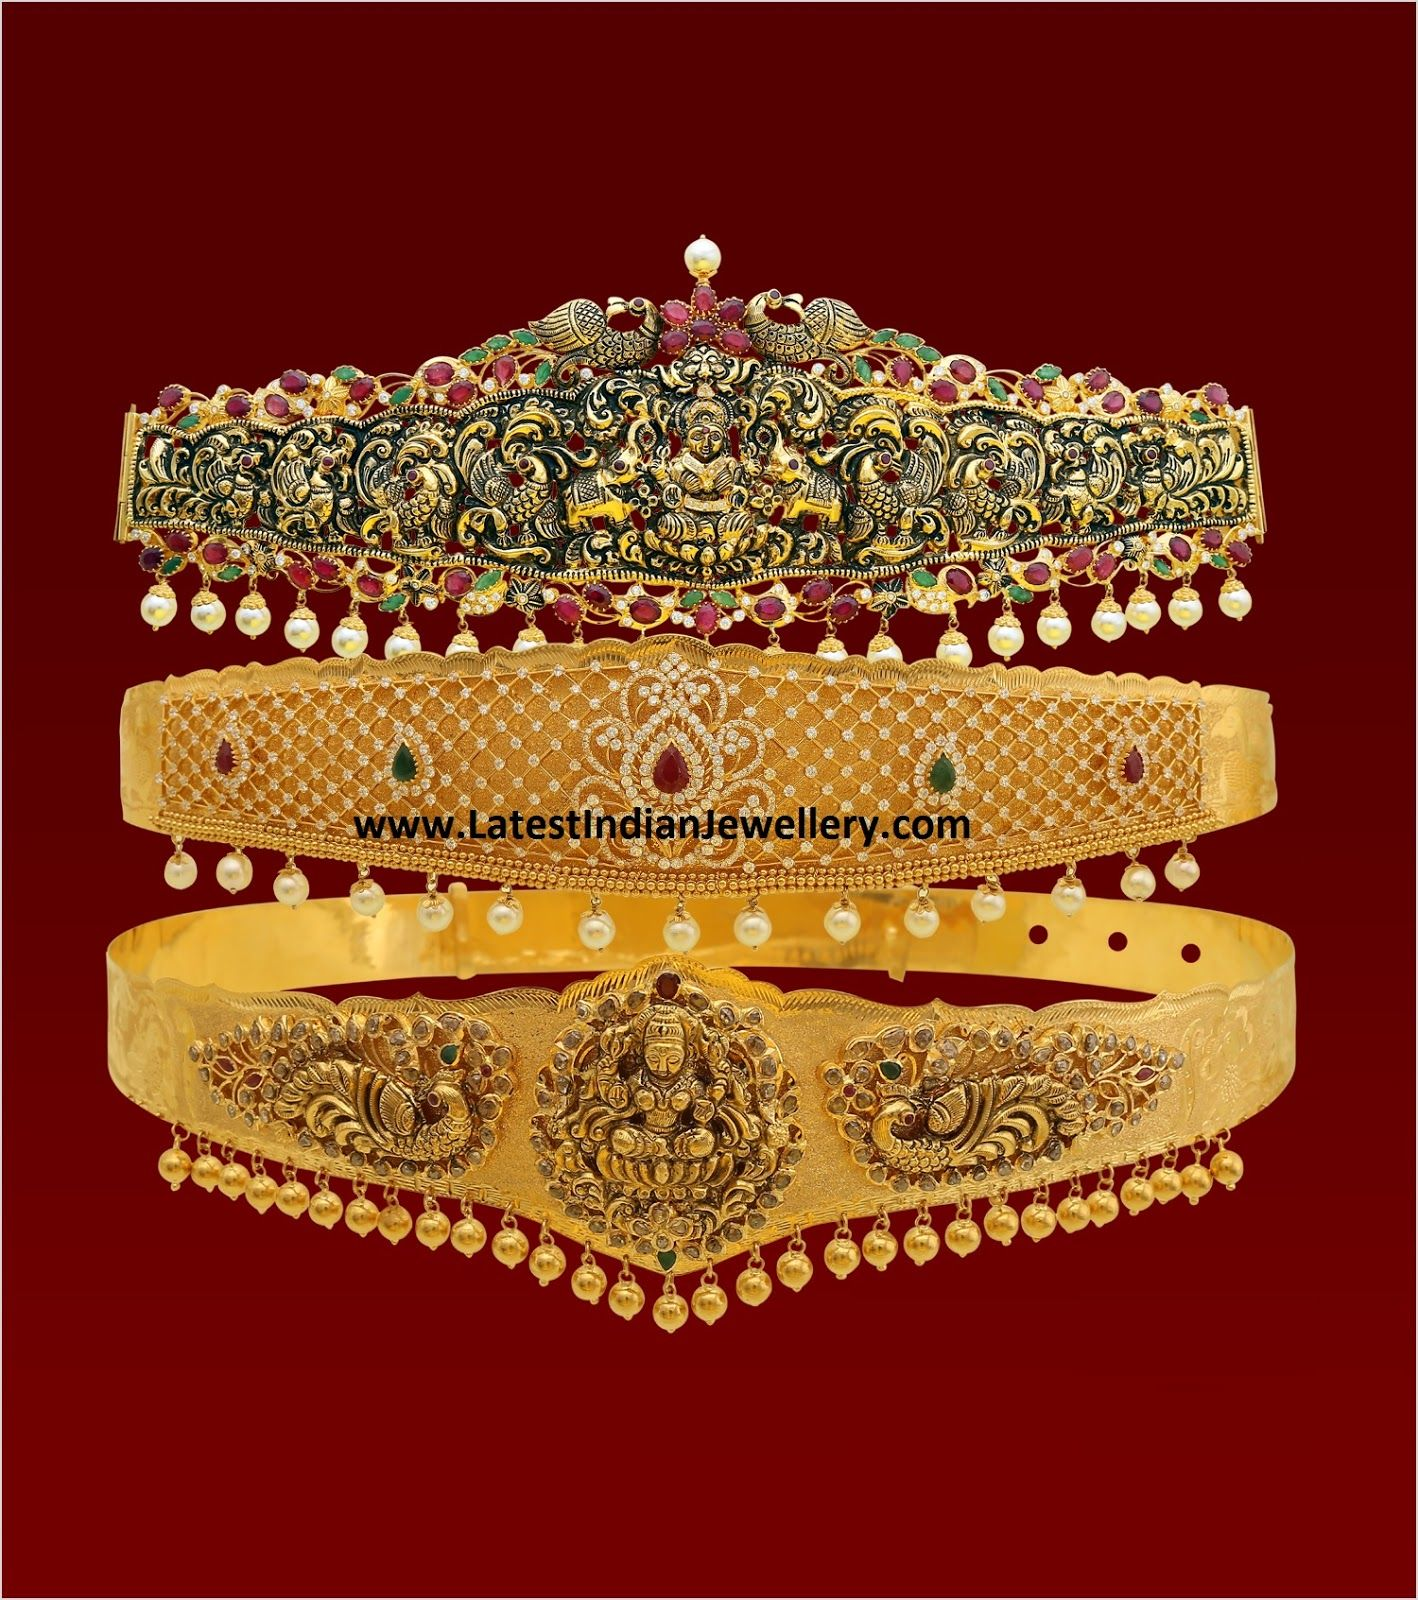 Gold vaddanam oddiyanam kammarpatta waisbelt designs south indian - Hot Vaddanam Designs